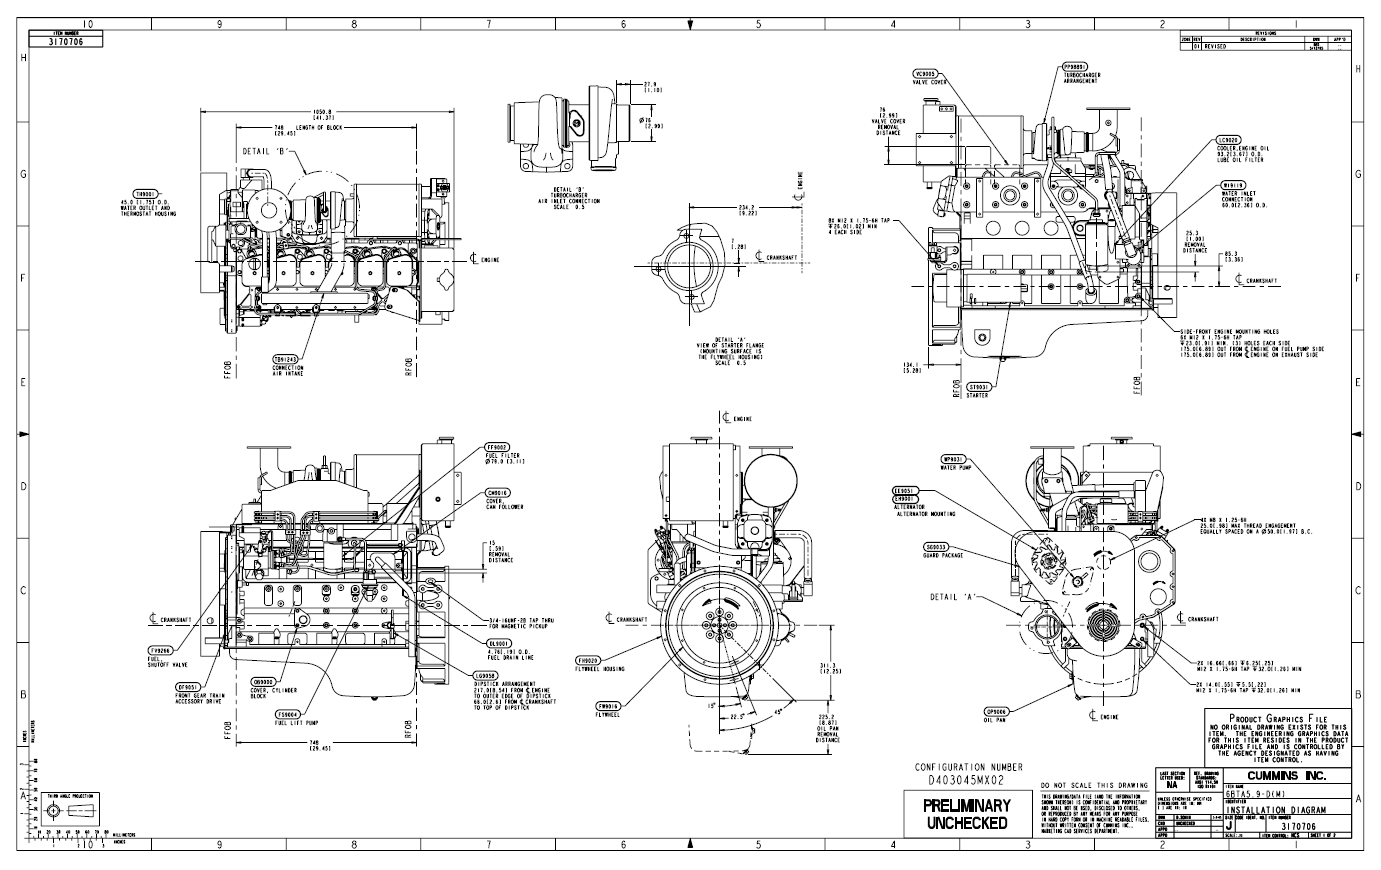 cat 6 wiring diagram pdf with Cummins Engine Drawings on P 0900c152800a7698 further Specification also 714 as well 2007 Cummins Belt Diagram as well Discussion T2704 ds752976.